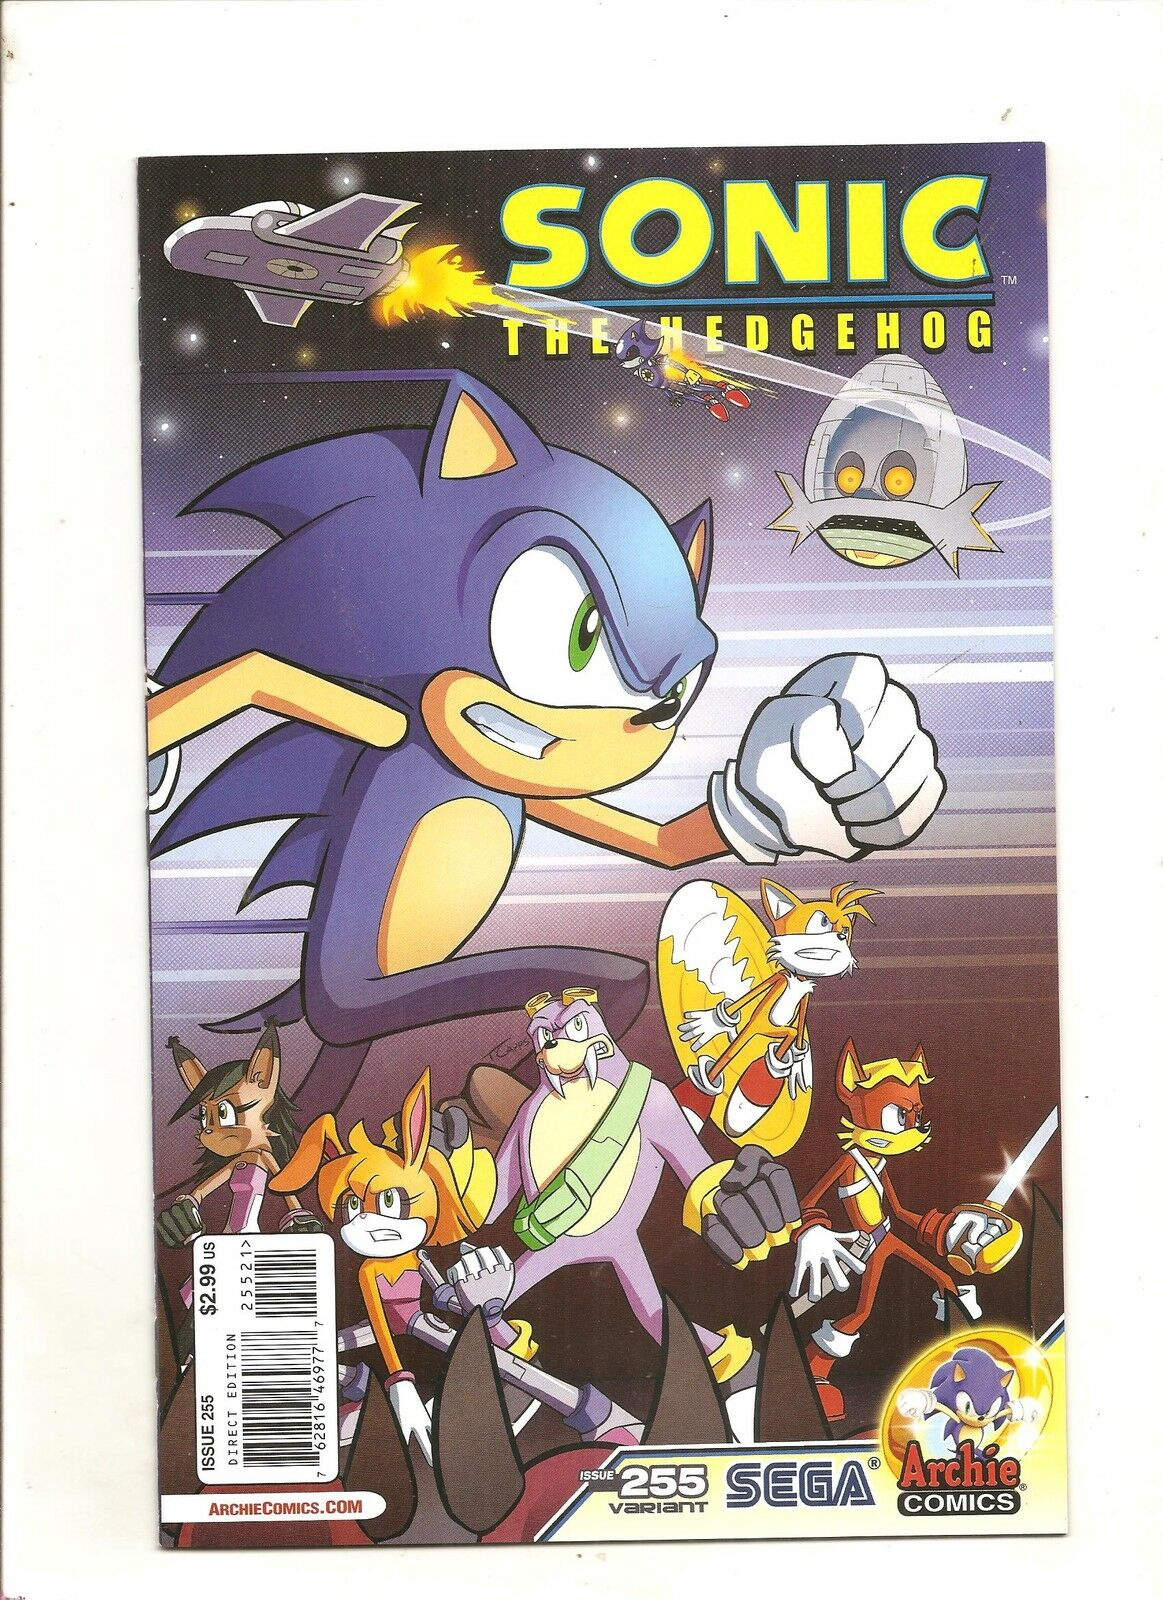 Archie Comics  Sonic The Hedgehog #257 A  Variant Edition